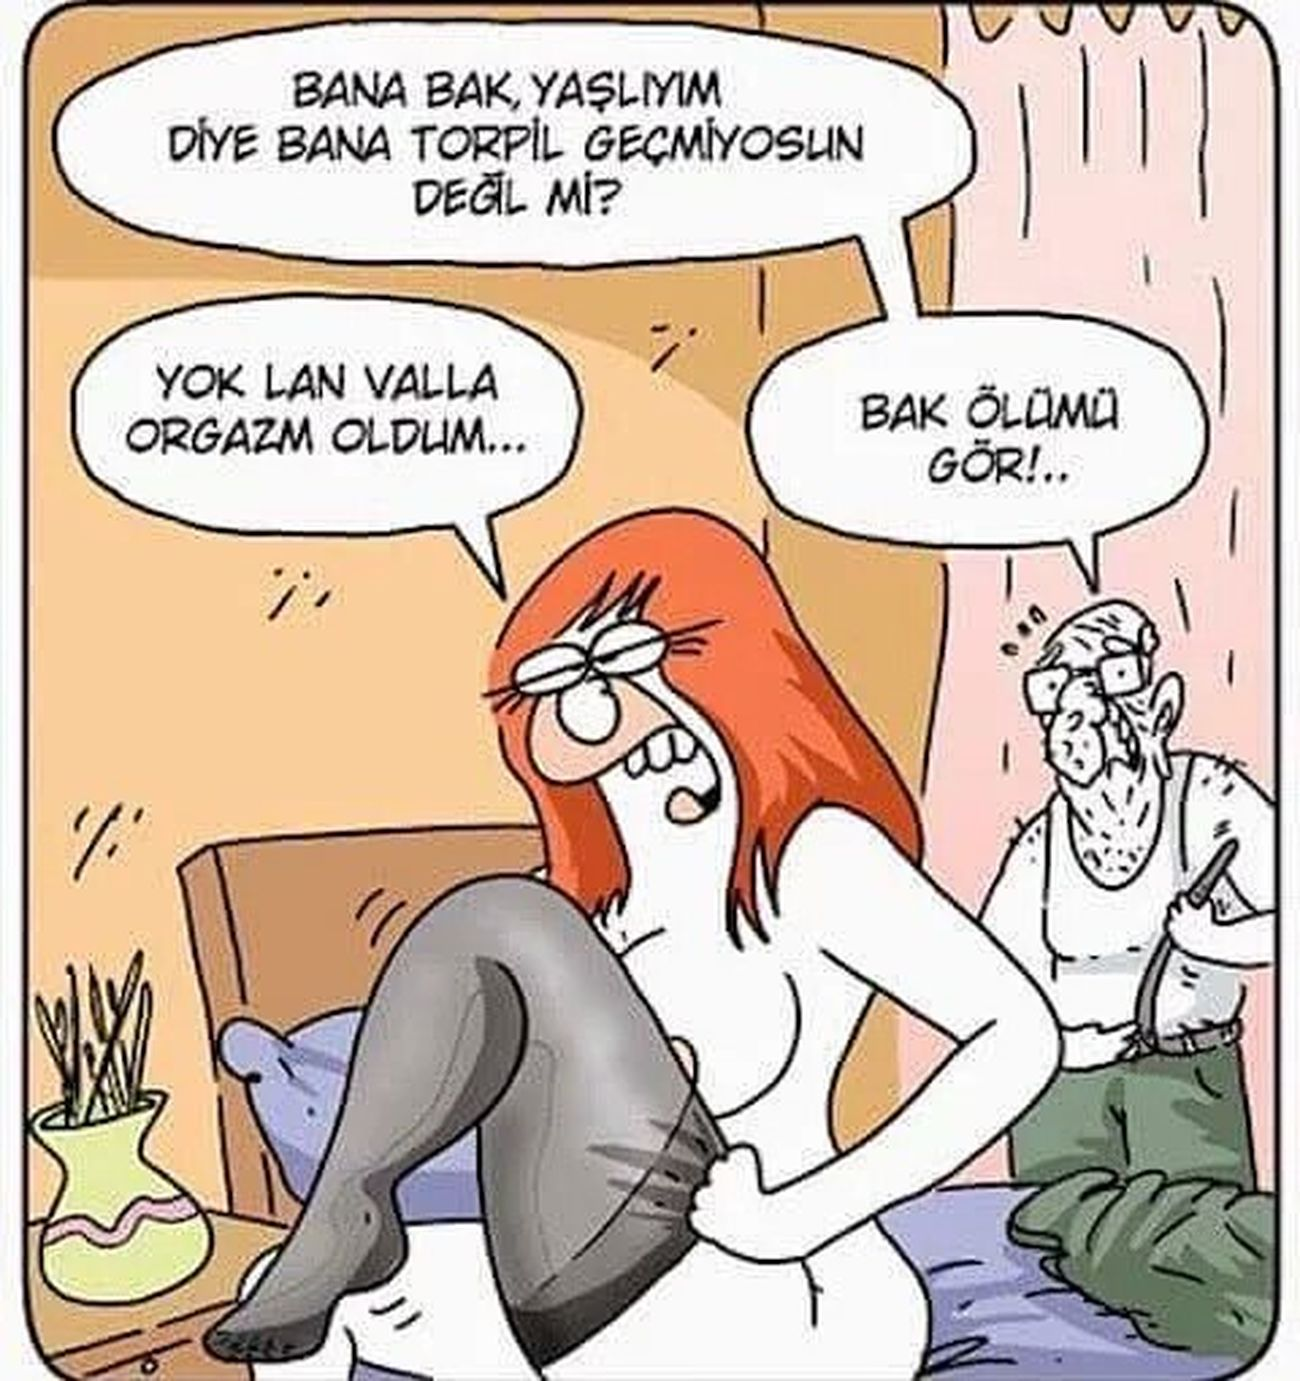 Komik Karikatur Karikatur Mizah Eğlence Eglenceli Komedi Penguen Girgir Uykusuz Caps Istanbul Fun Funny Love Instagood Me TBT  Follow Cute Followme Happy Photooftheday Beautiful Girl like4like picoftheday photoremphin life